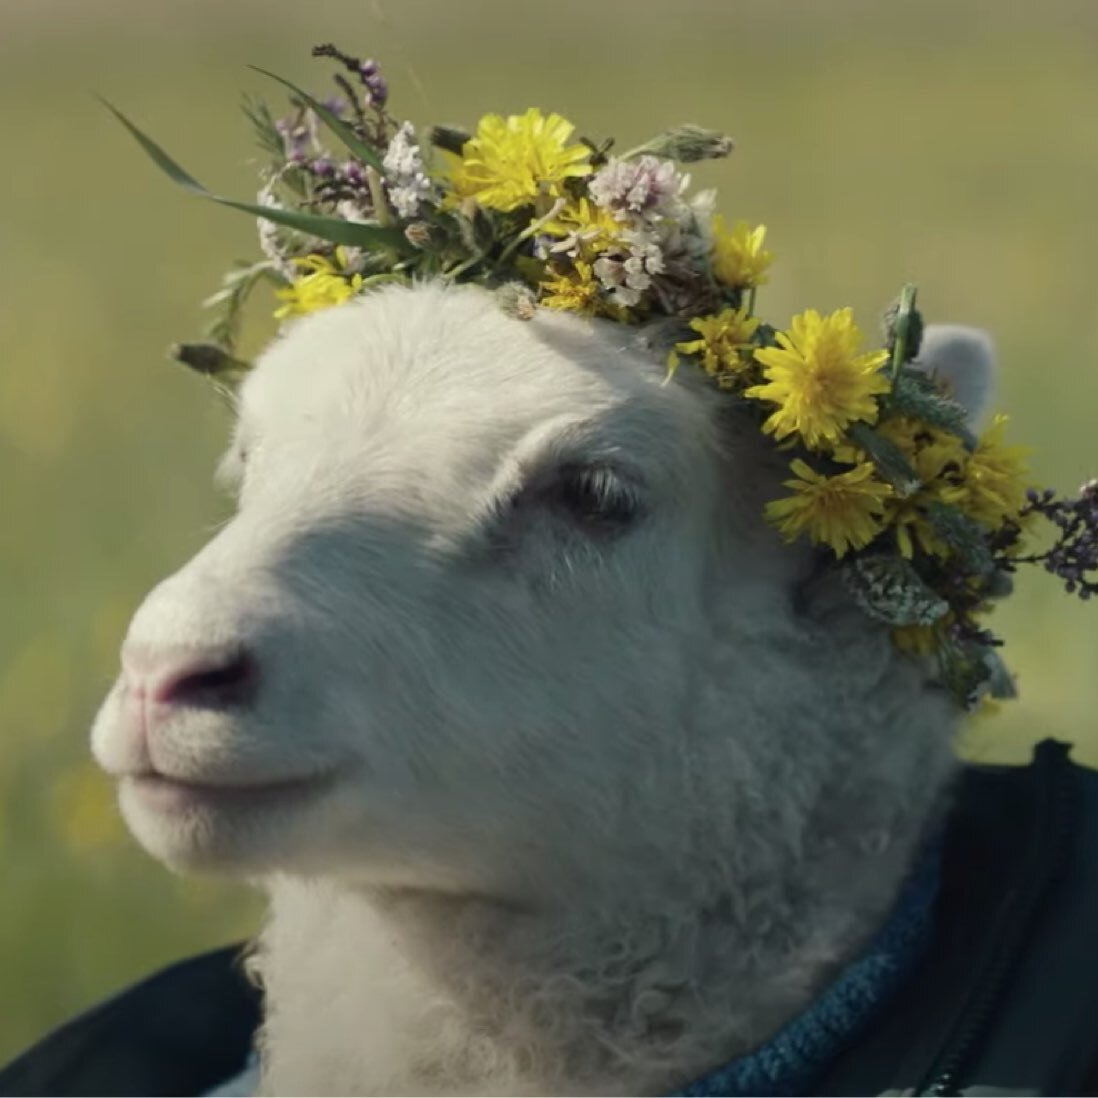 Photo of a lamb with a flower crown on it's head. Photo still is from an upcoming movie titled Lamb made by A24 Studios, makers of Hereditary and Midsommar.